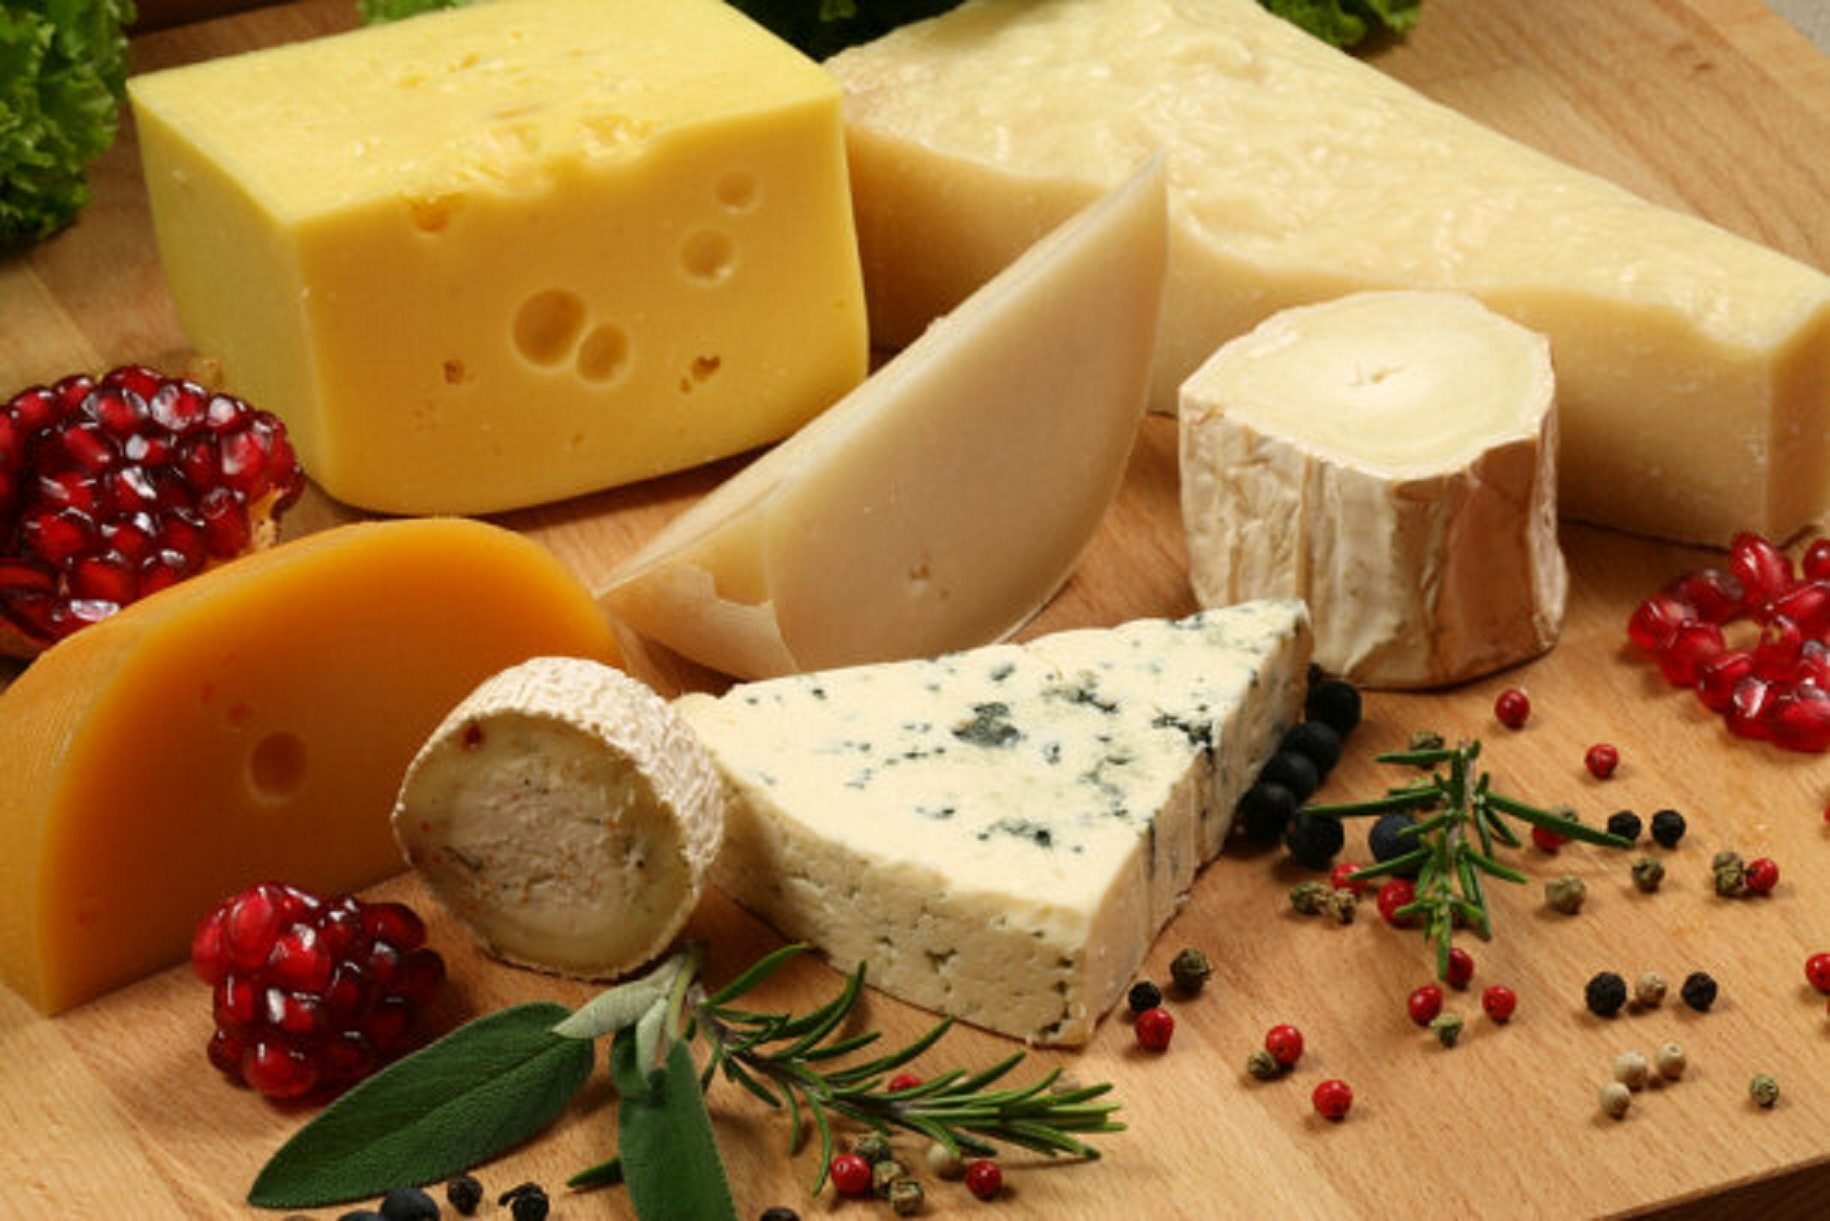 low-fat cheese options